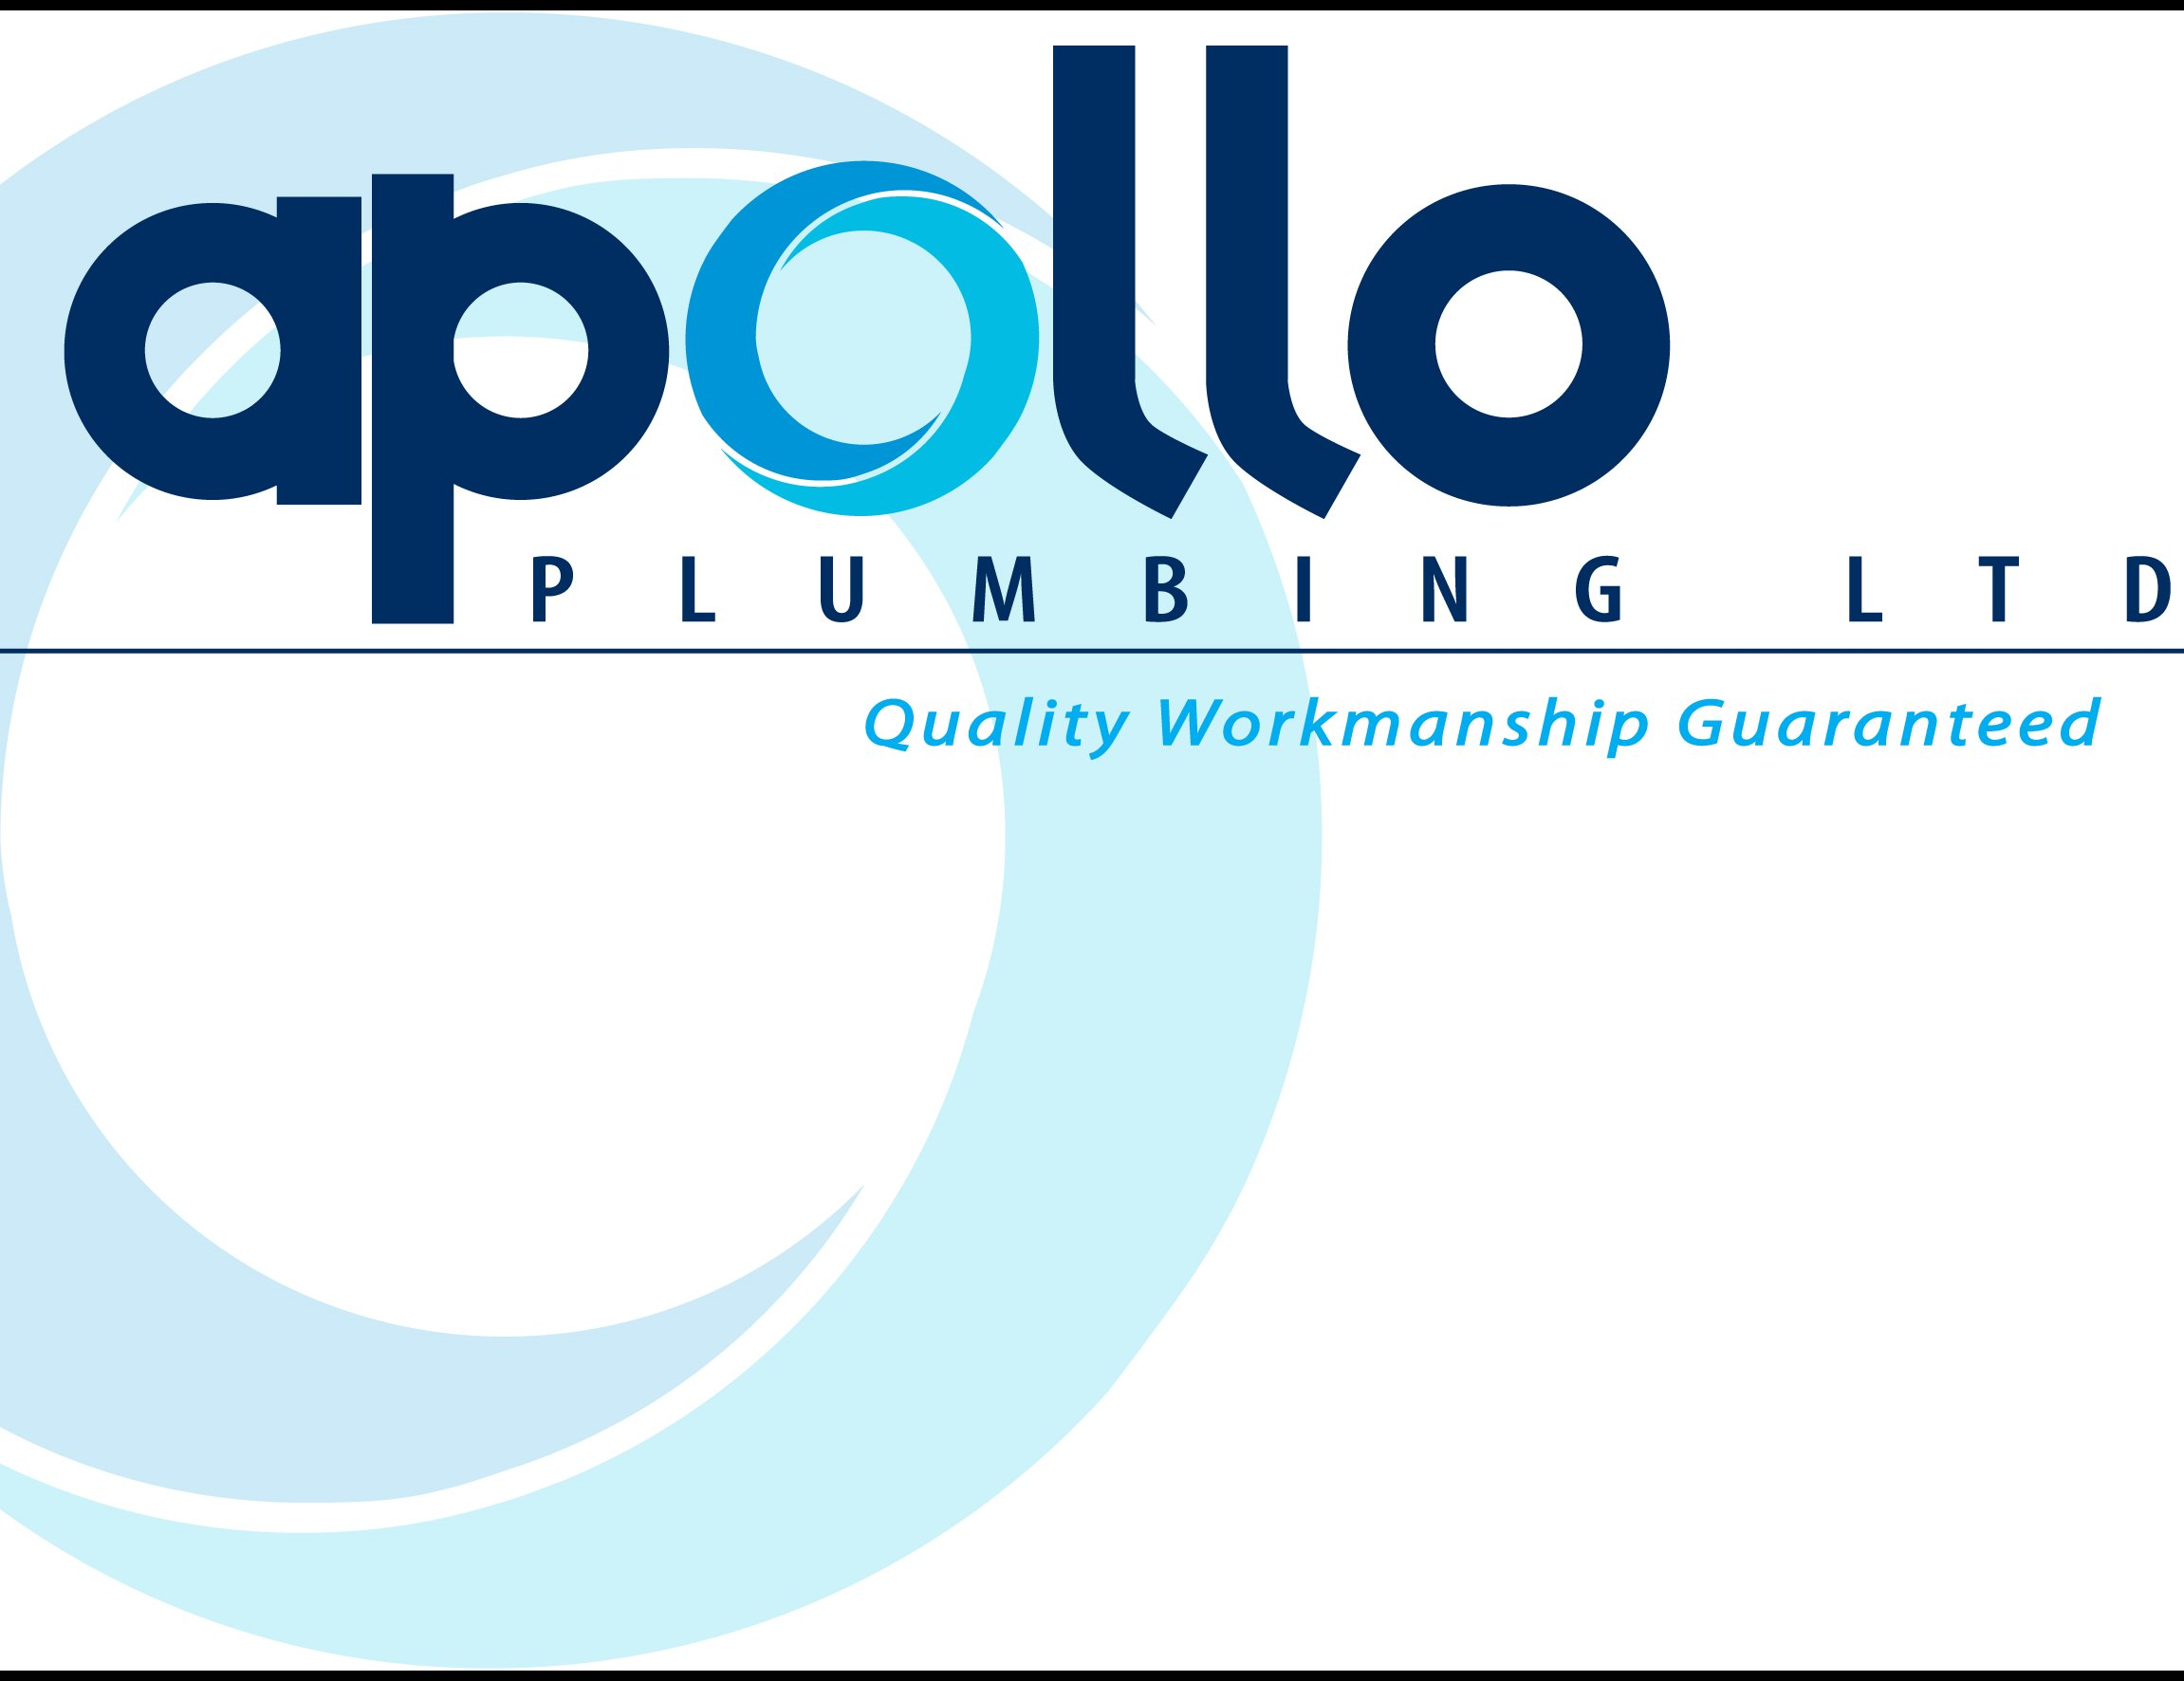 Apollo Plumbing Ltd